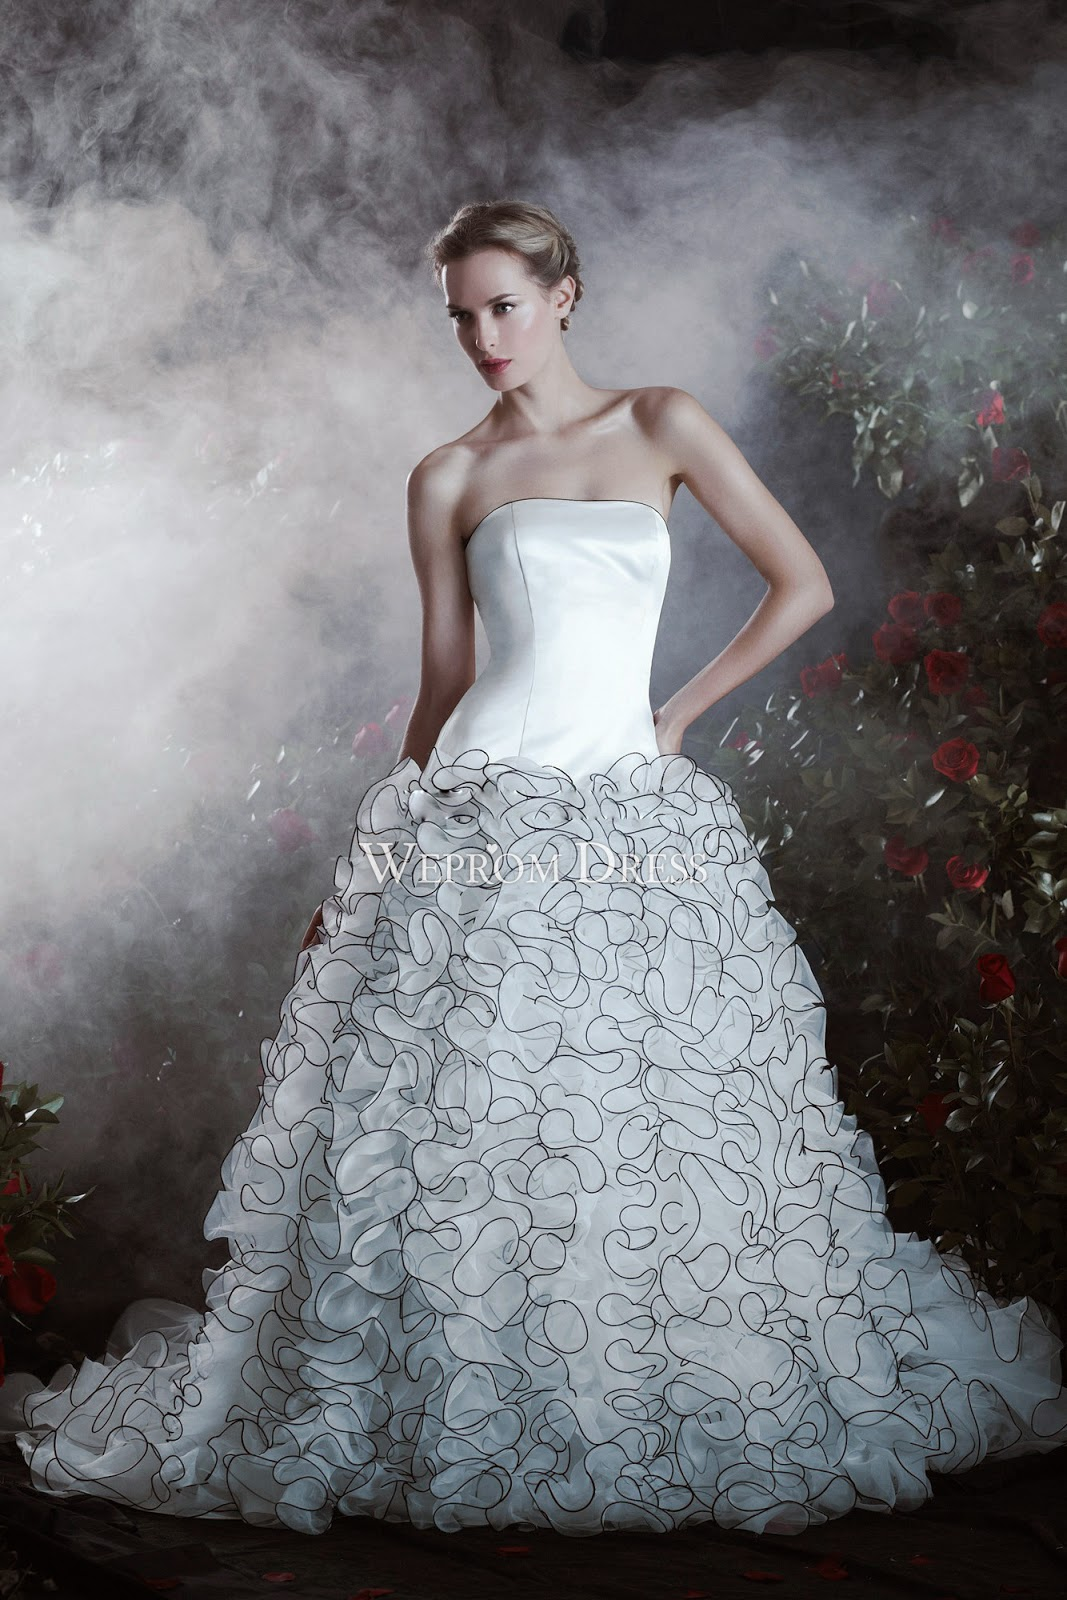 7 Different Types Of Wedding Dresses Every Bride Should Have A Look